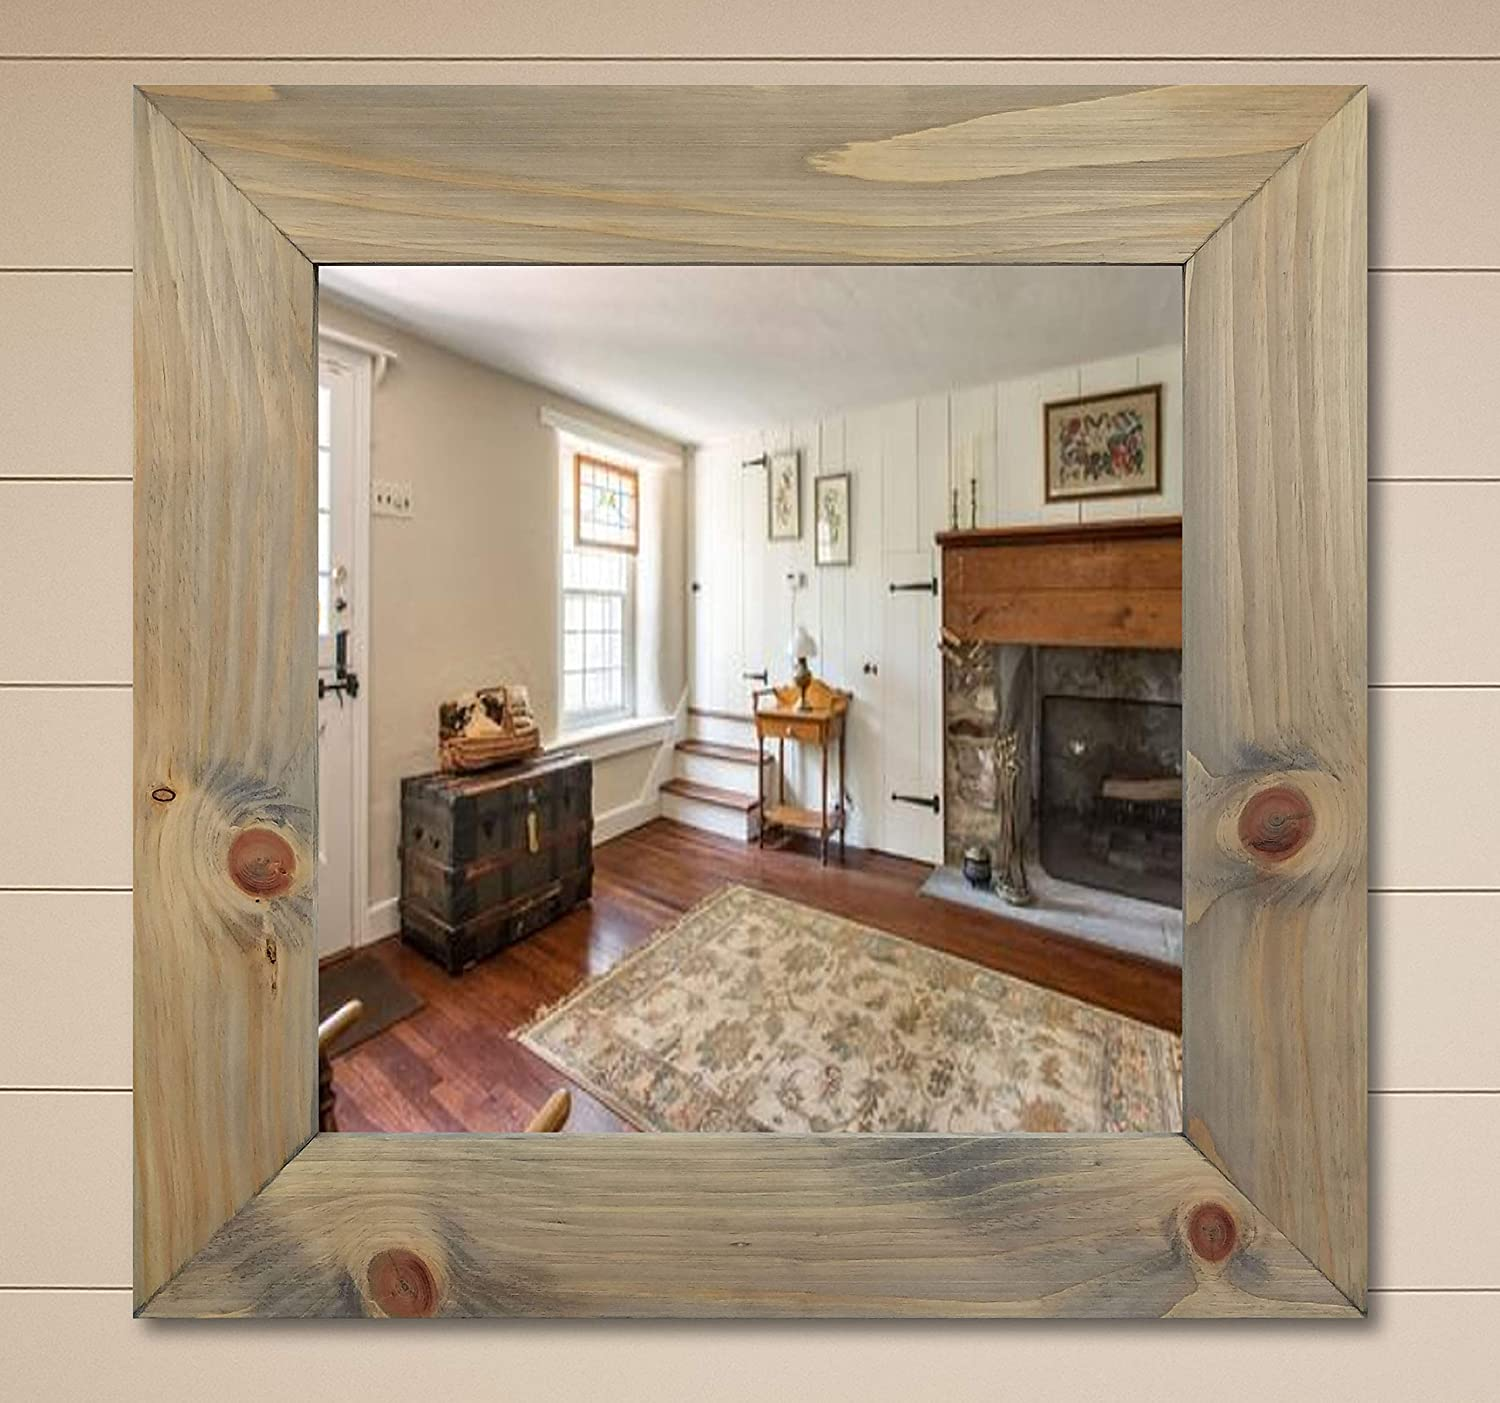 Amazon Com Custom Square Shiplap Rustic Wood Framed Mirror 20 Stain Colors Mirror For Wall Hanging Mirror Large Mirror Decorative Mirror Bathroom Mirror Bedroom Mirror Office Mirror Over Desk Mirror Handmade Products